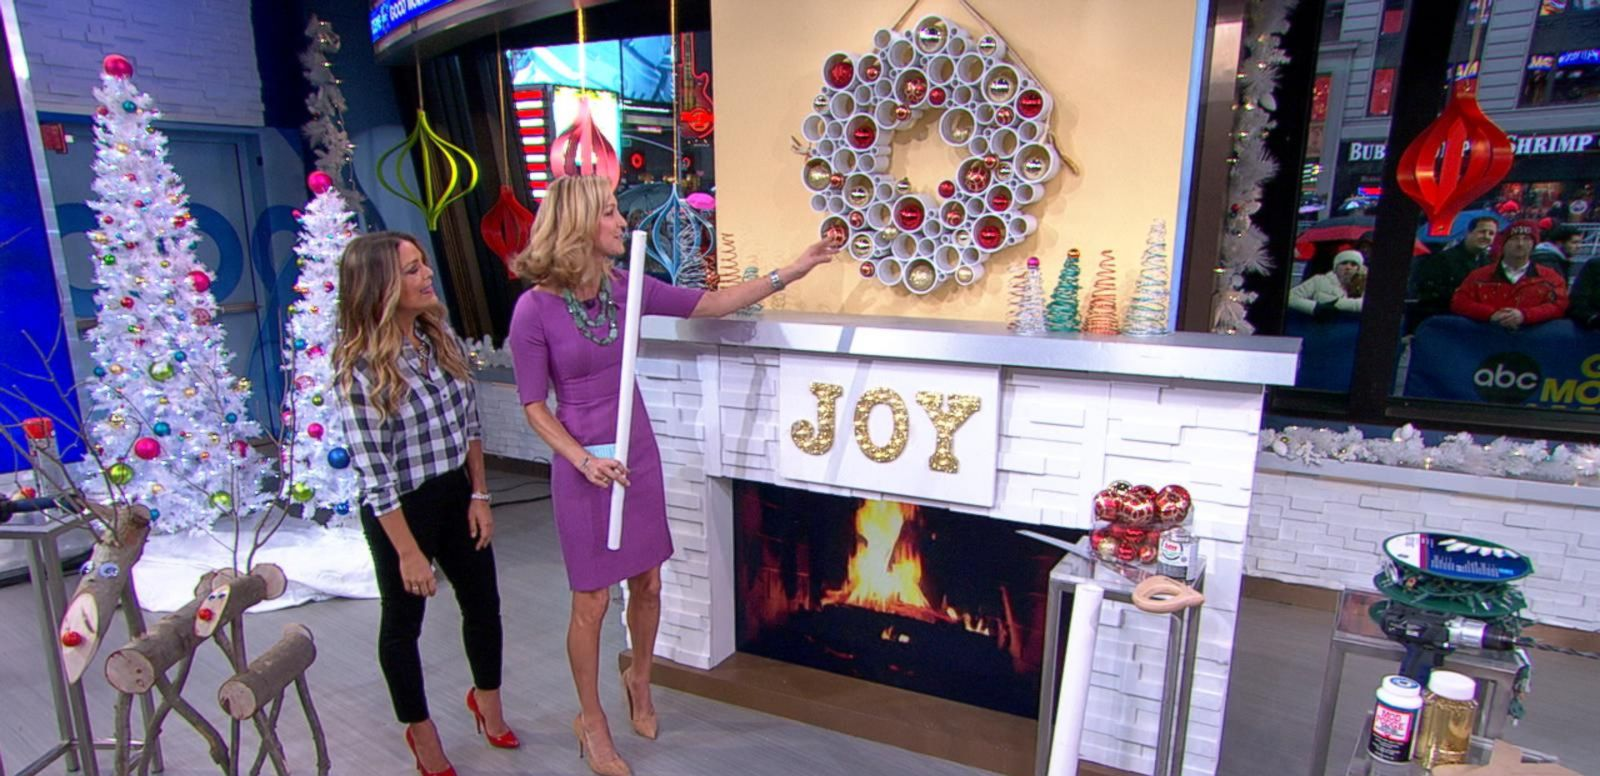 DIY Holiday Decorations: 4 Fun And Festive Craft Ideas To